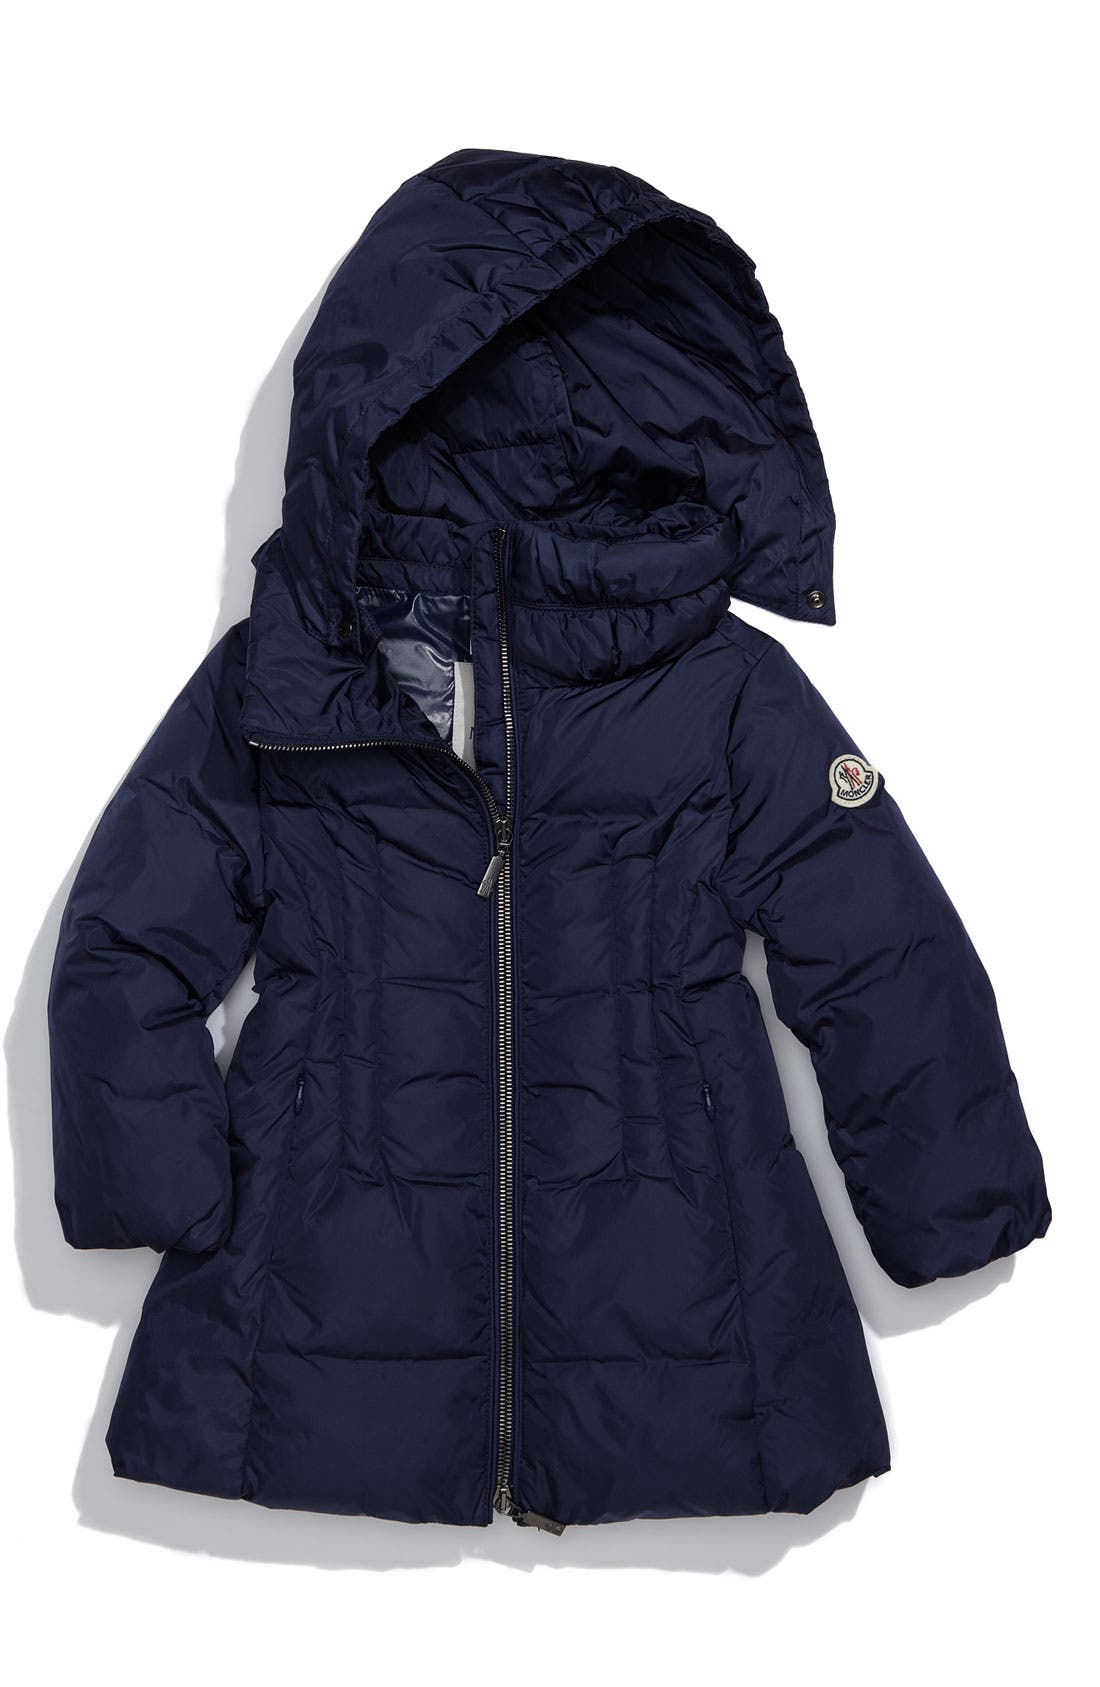 Alternate Image 1 Selected - Moncler Long Quilted Coat (Toddler)